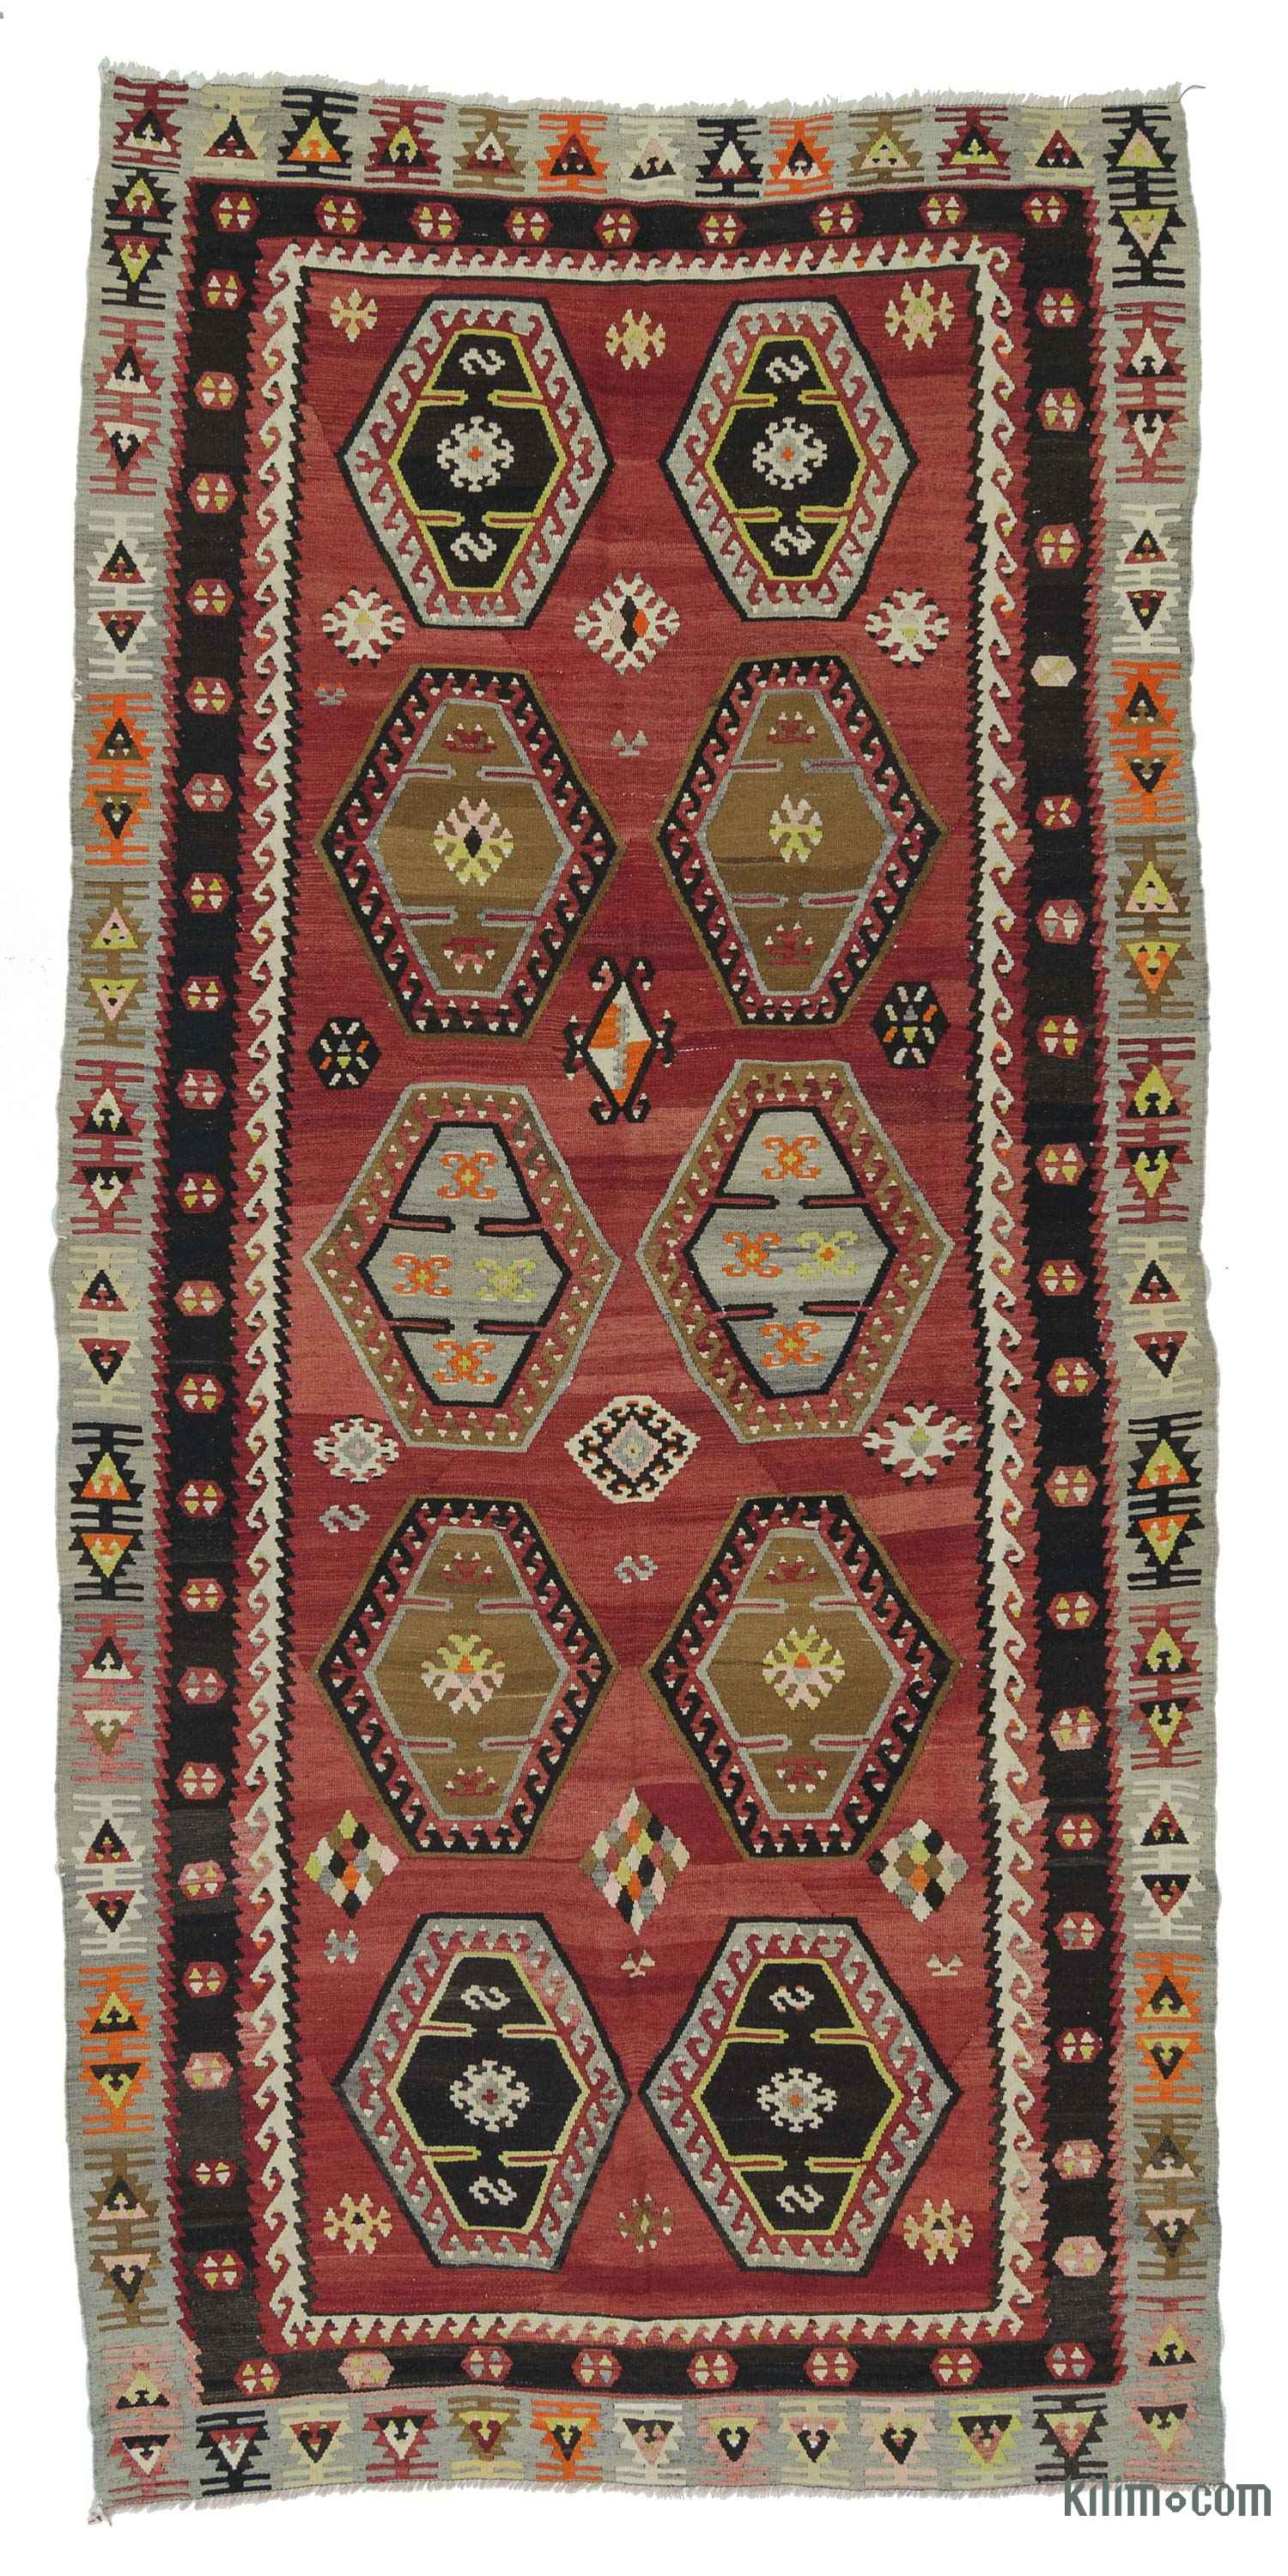 Rugs And Kilims Are The Master Elements Of Bohemian Style: K0018872 Red Vintage Sarkisla Kilim Rug